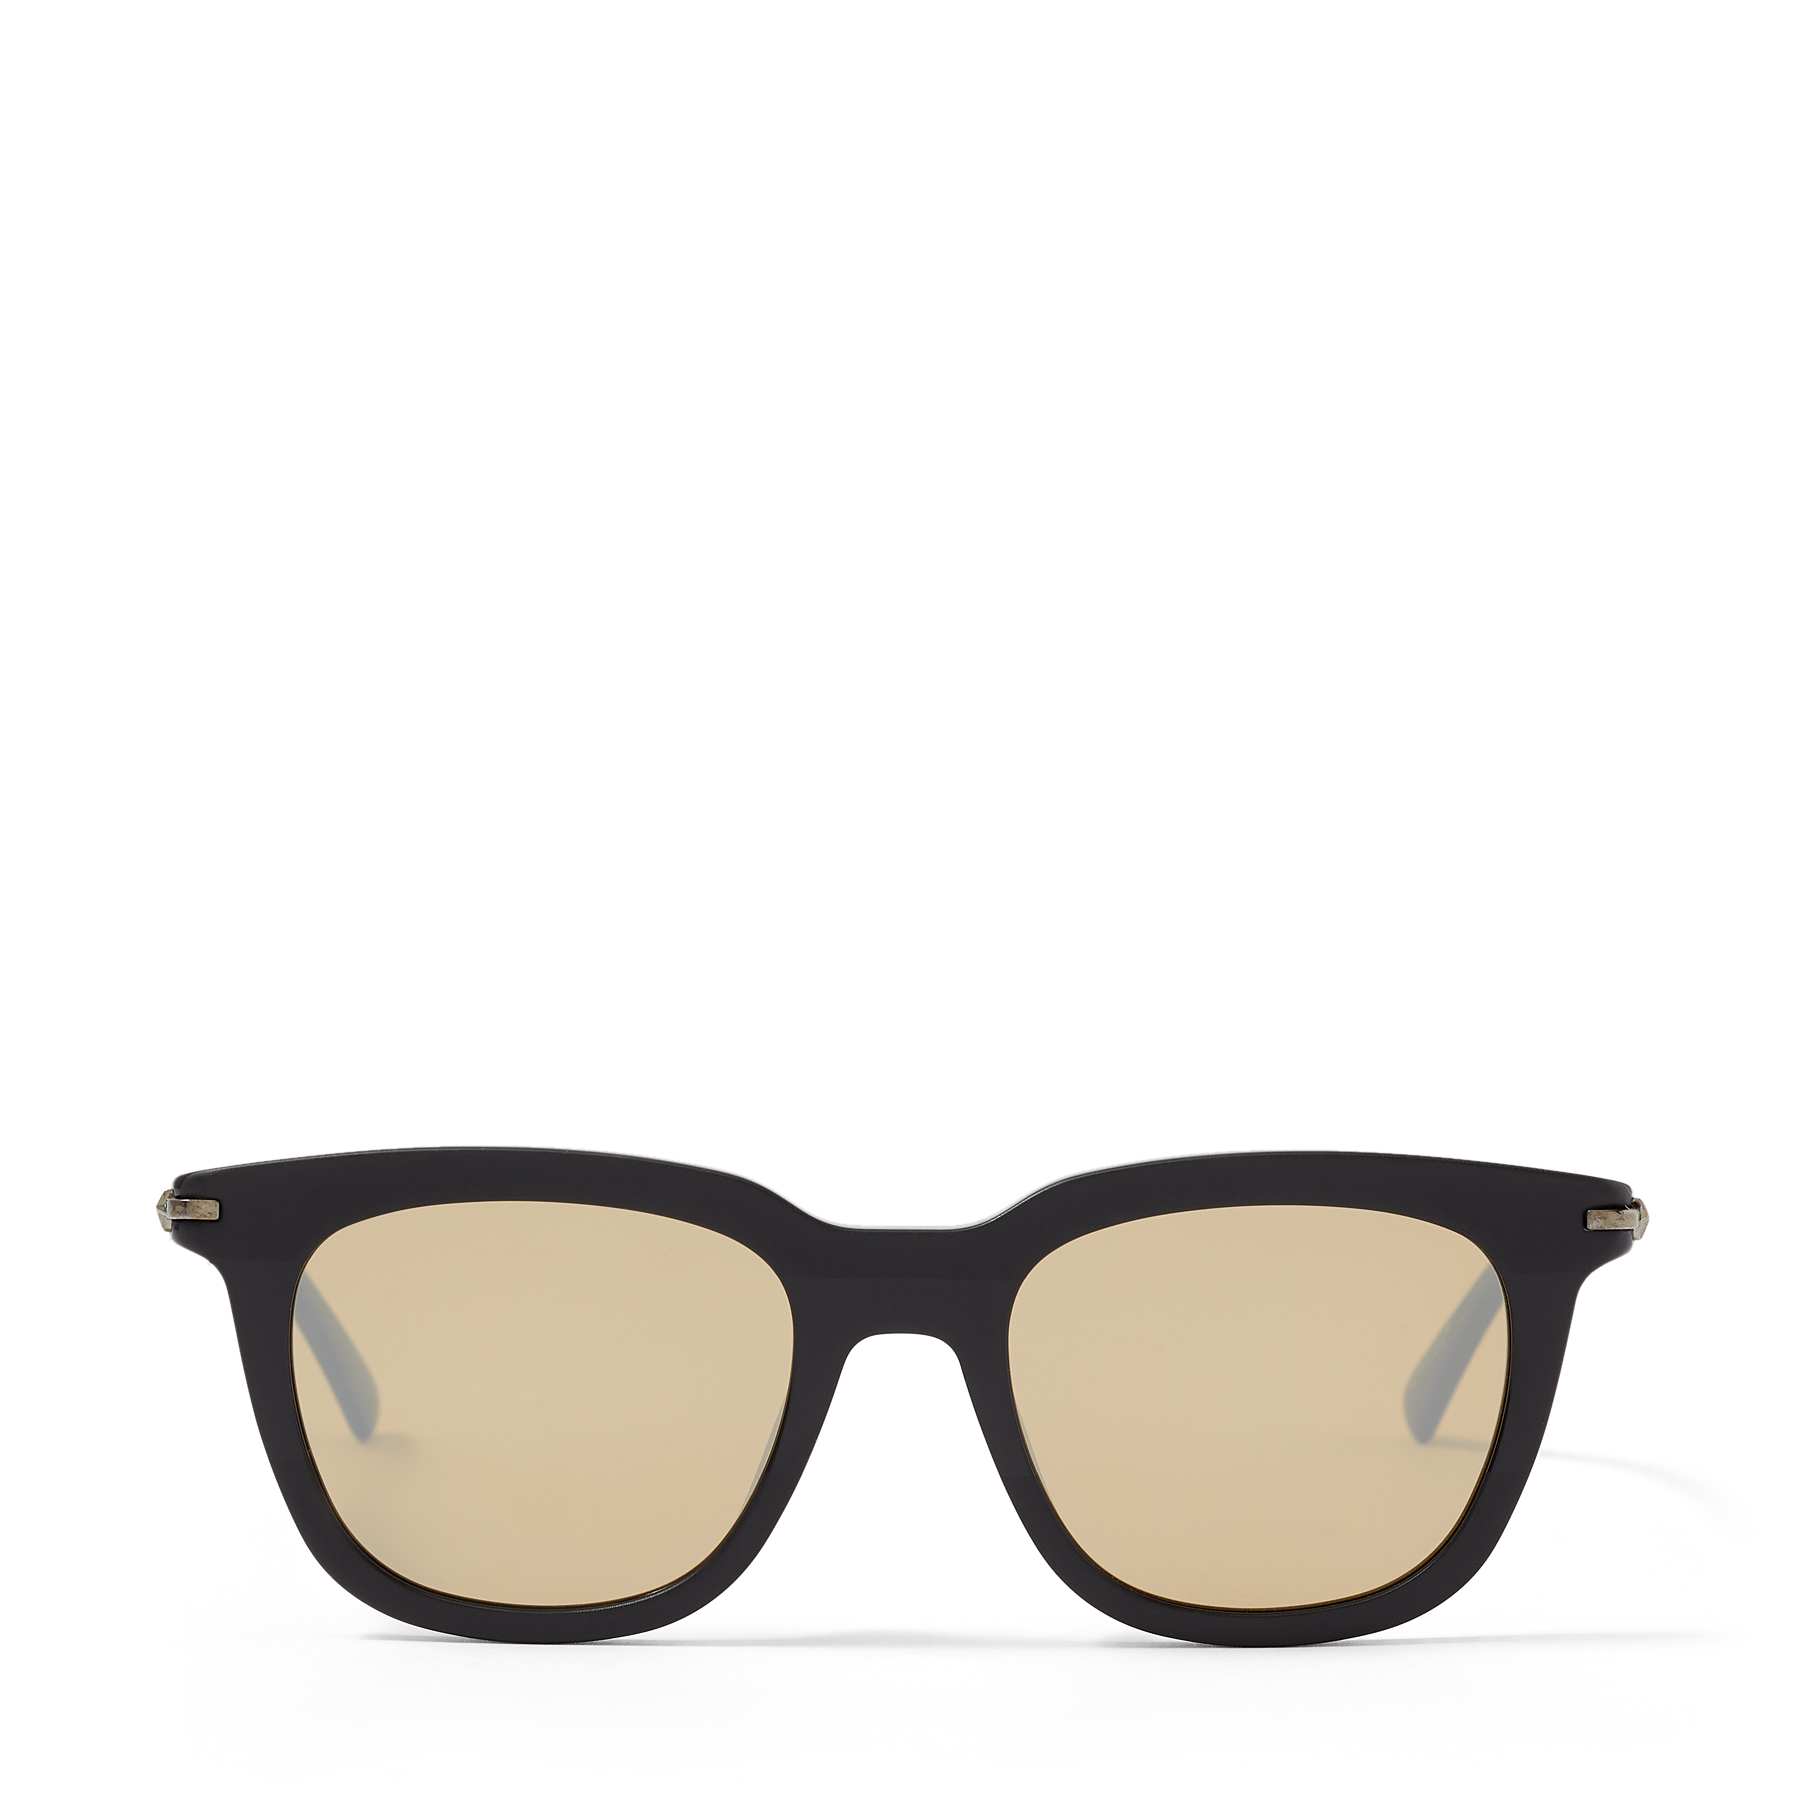 These black acetate GAD sunglasses are crafted in Italy to a classic square shape that lends a sophisticated finish to myriad looks. Silver mirrored lenses lend a contemporary slant.